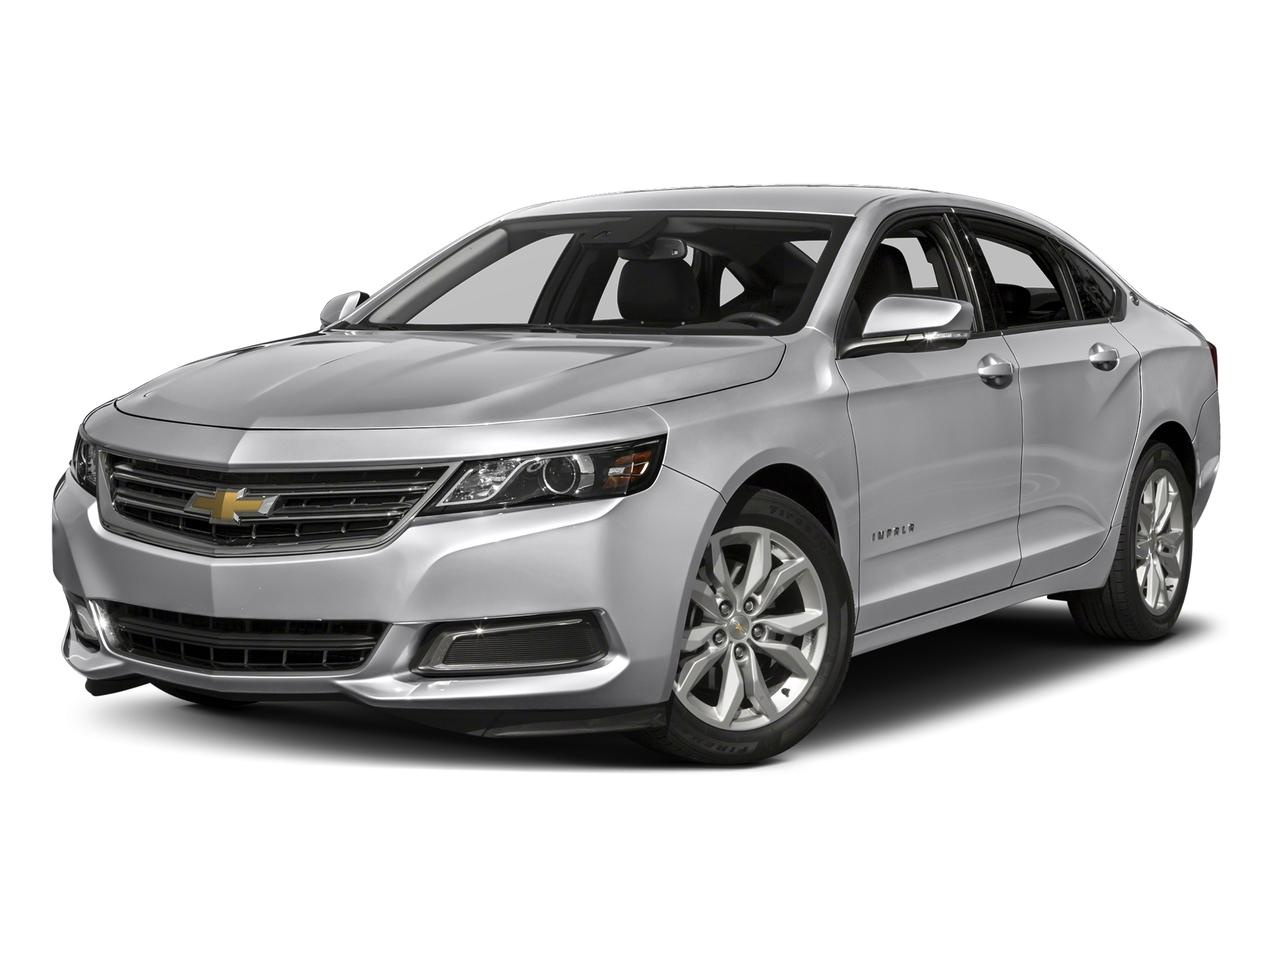 2018 Chevrolet Impala Vehicle Photo in Price, UT 84501